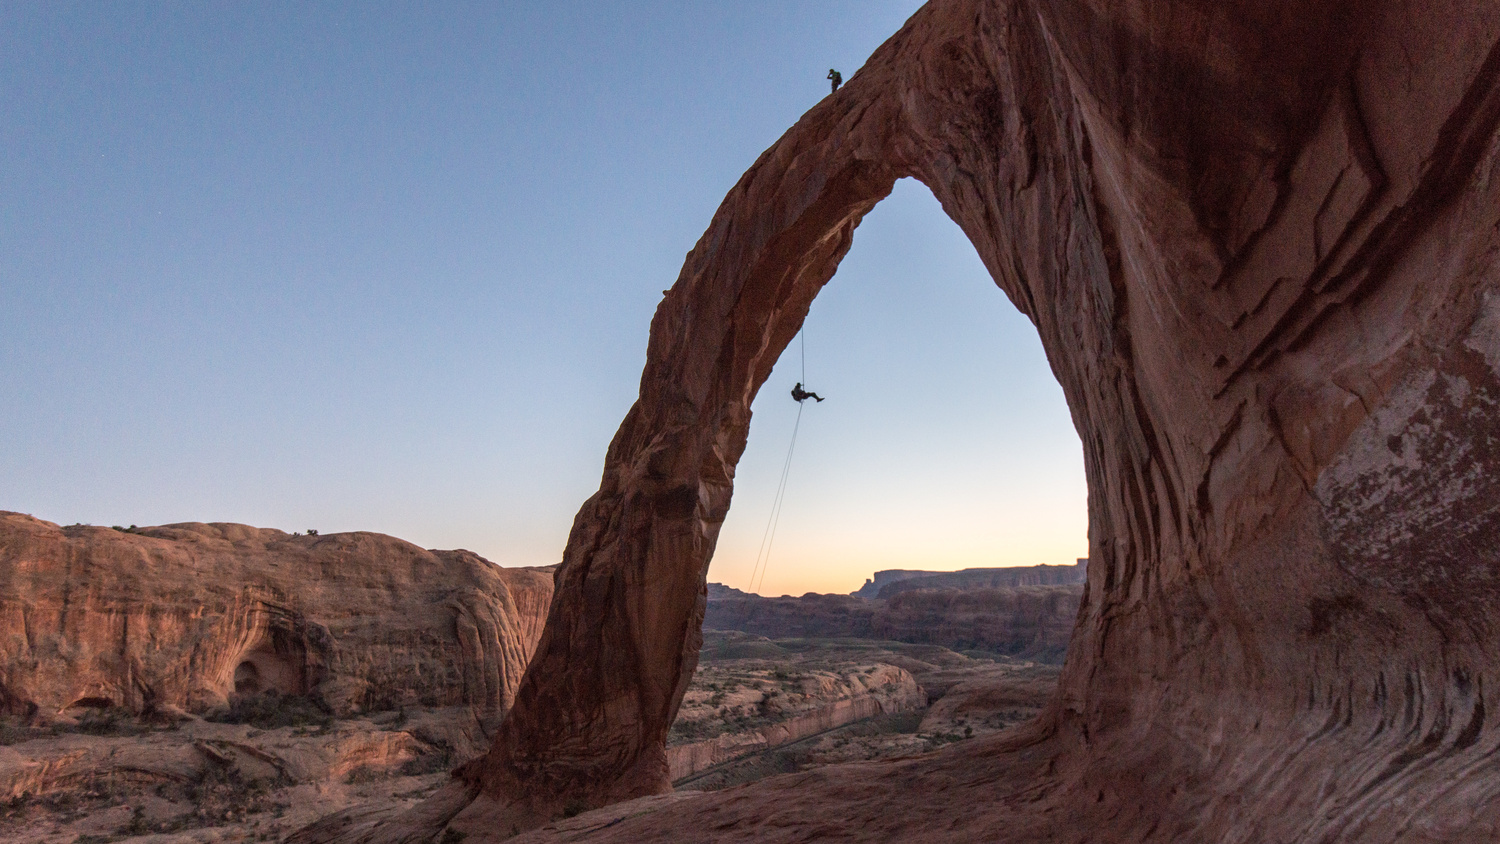 Rappelling from Corona Arch by TYLER YATES